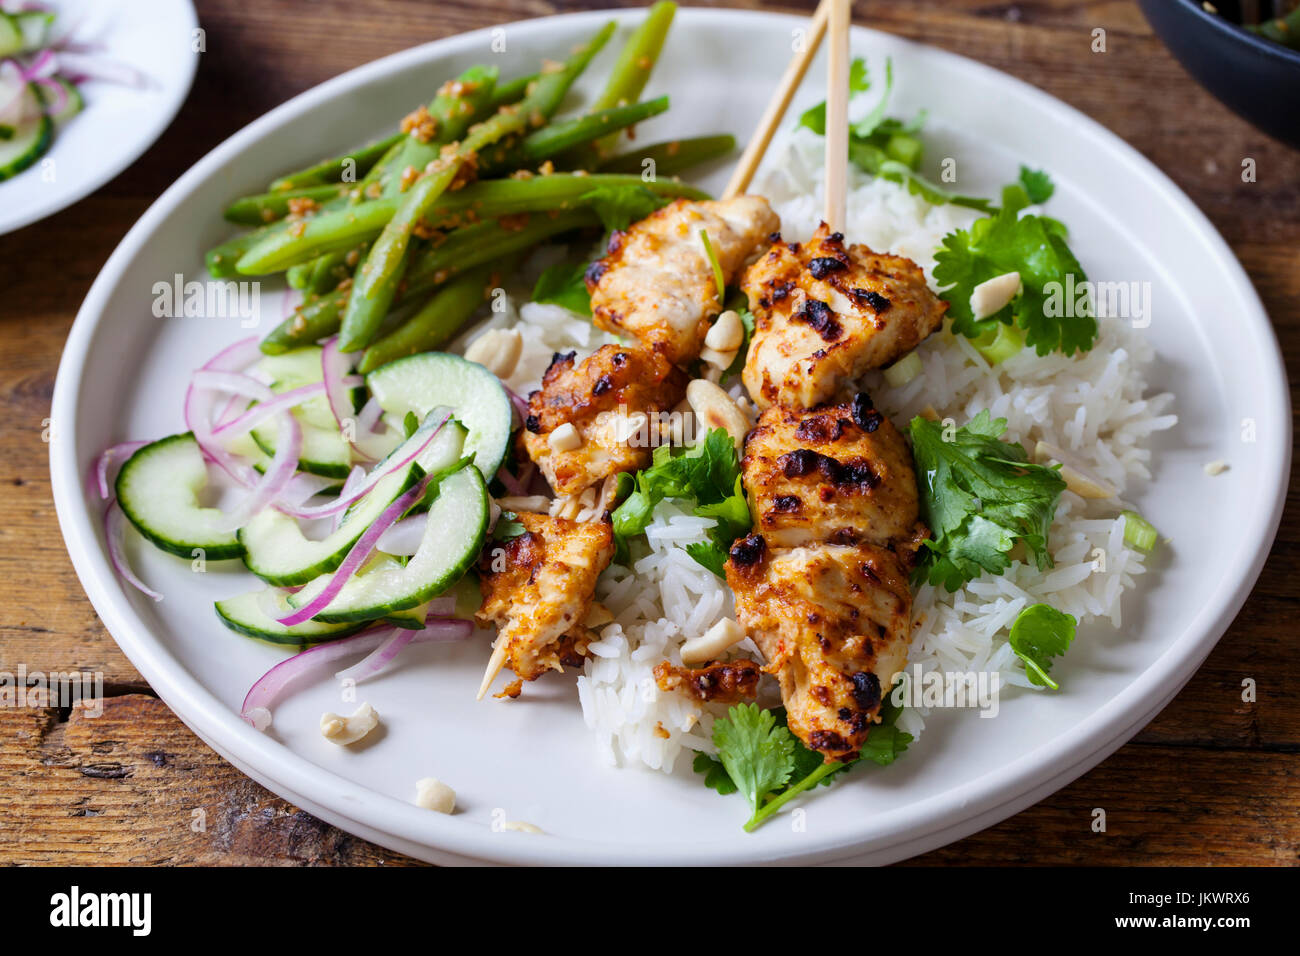 Satay chicken skewers with rice, cucumber salad and green beans - Stock Image